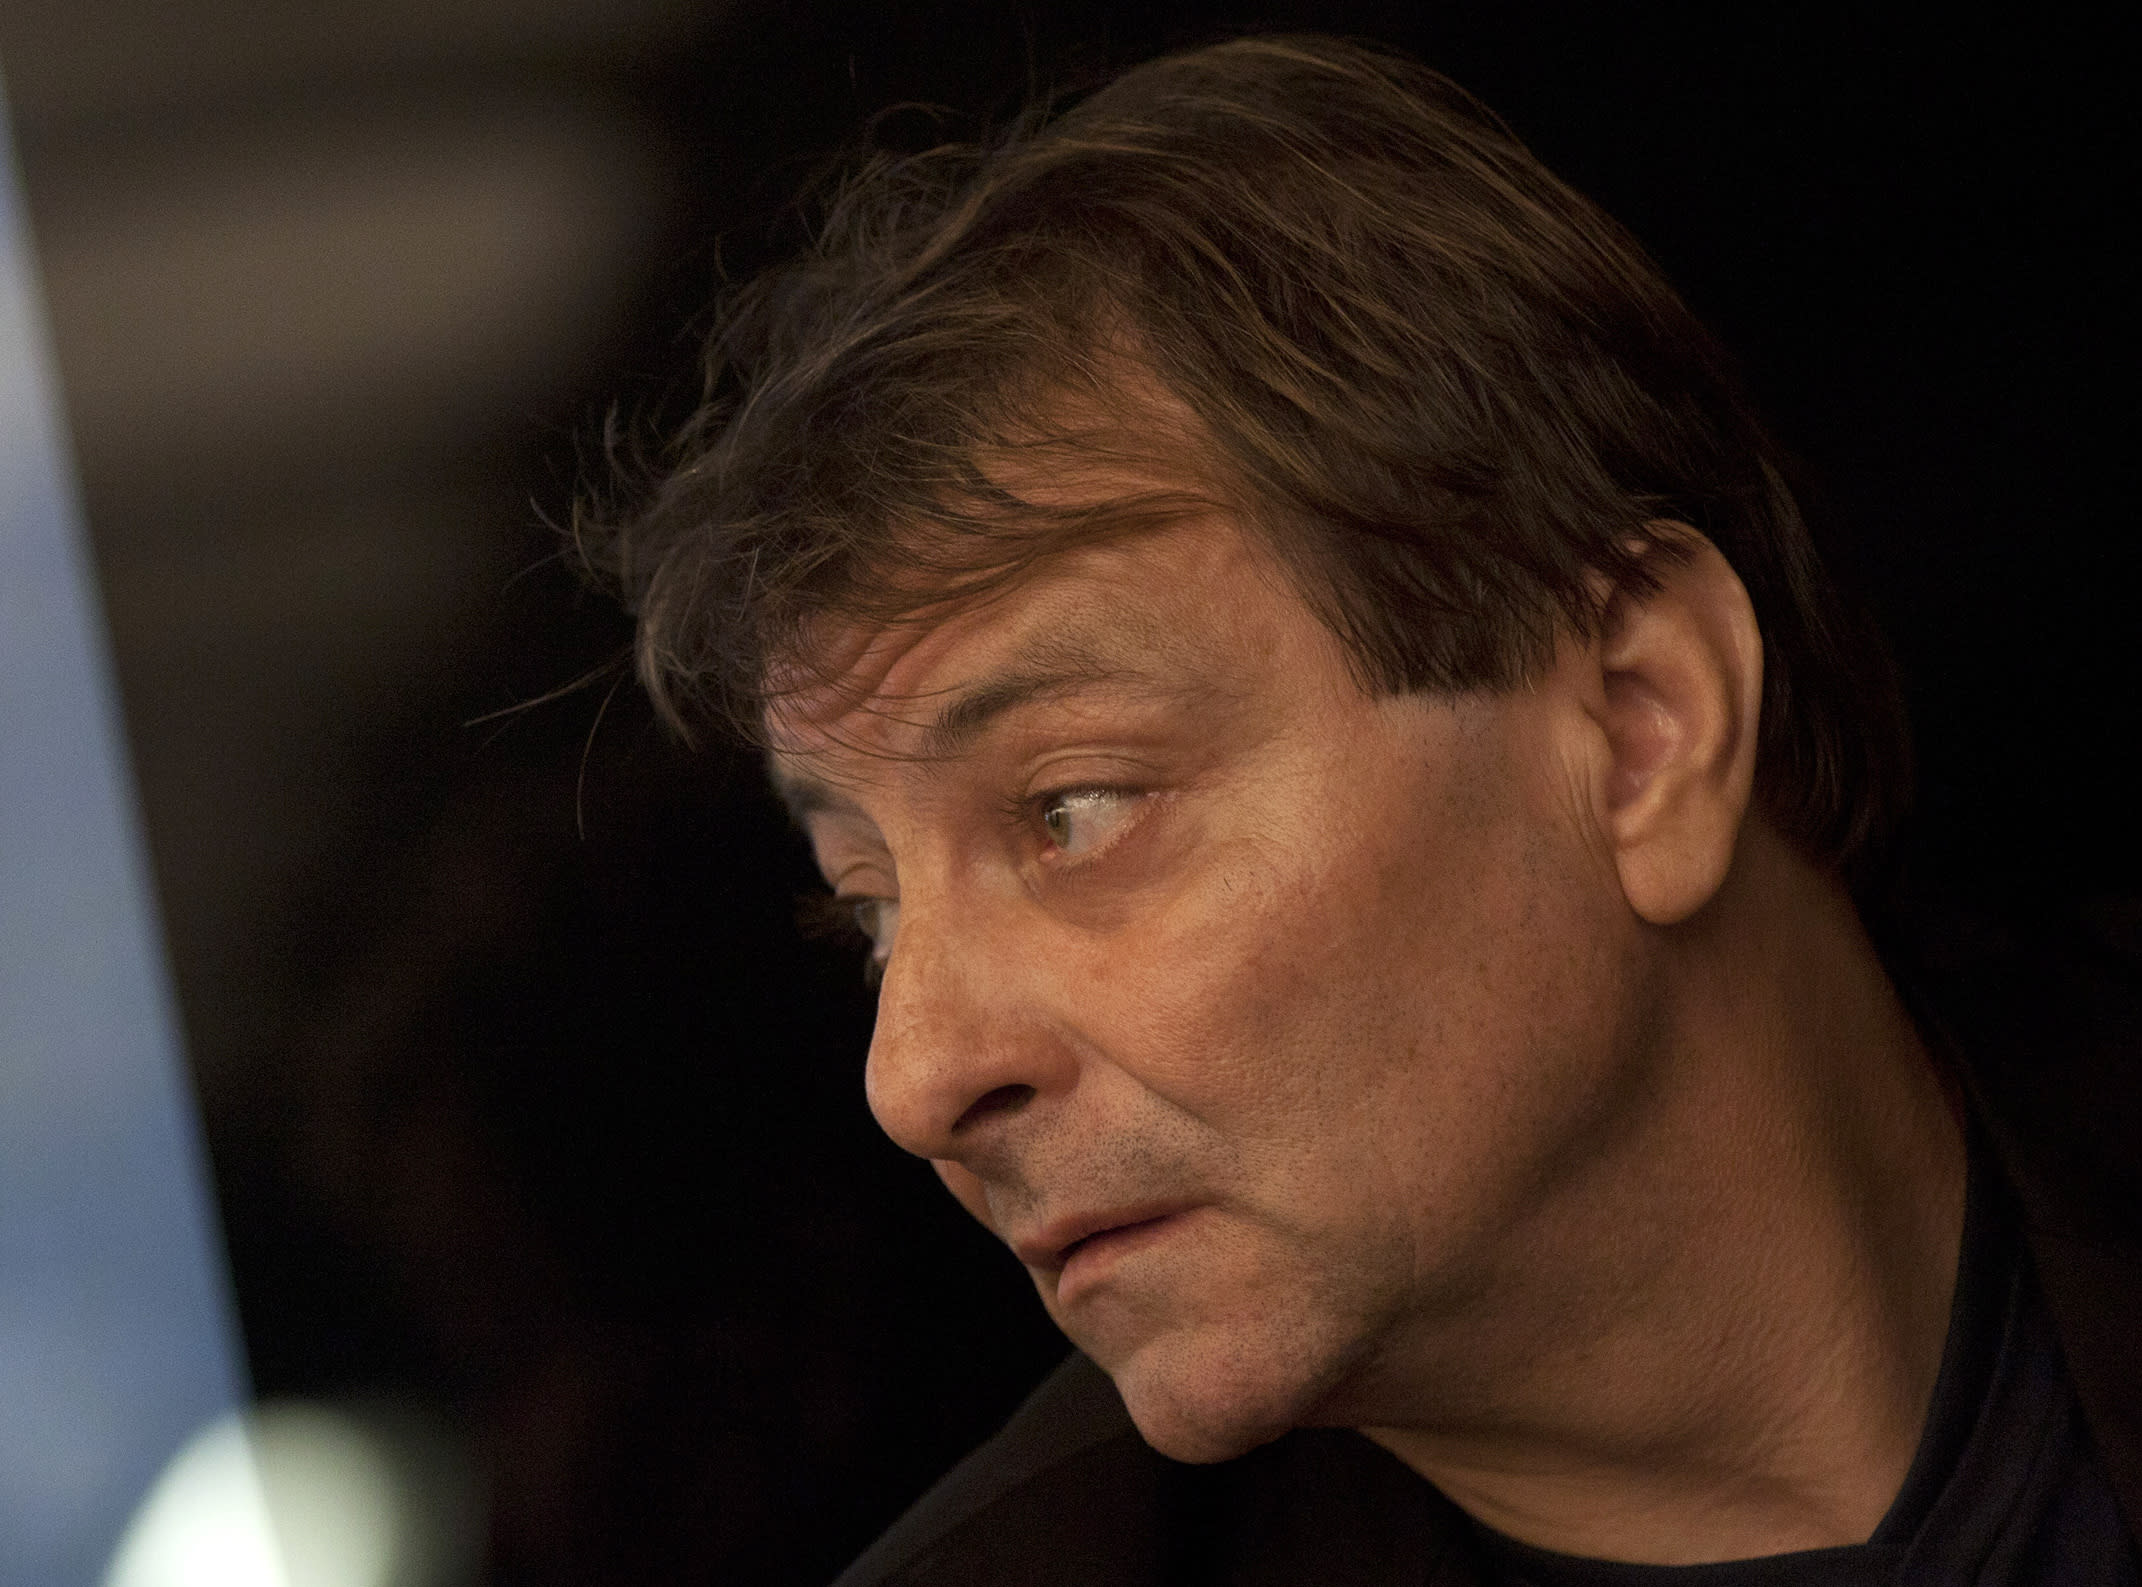 Brazil judge orders deportation of Cesare Battisti